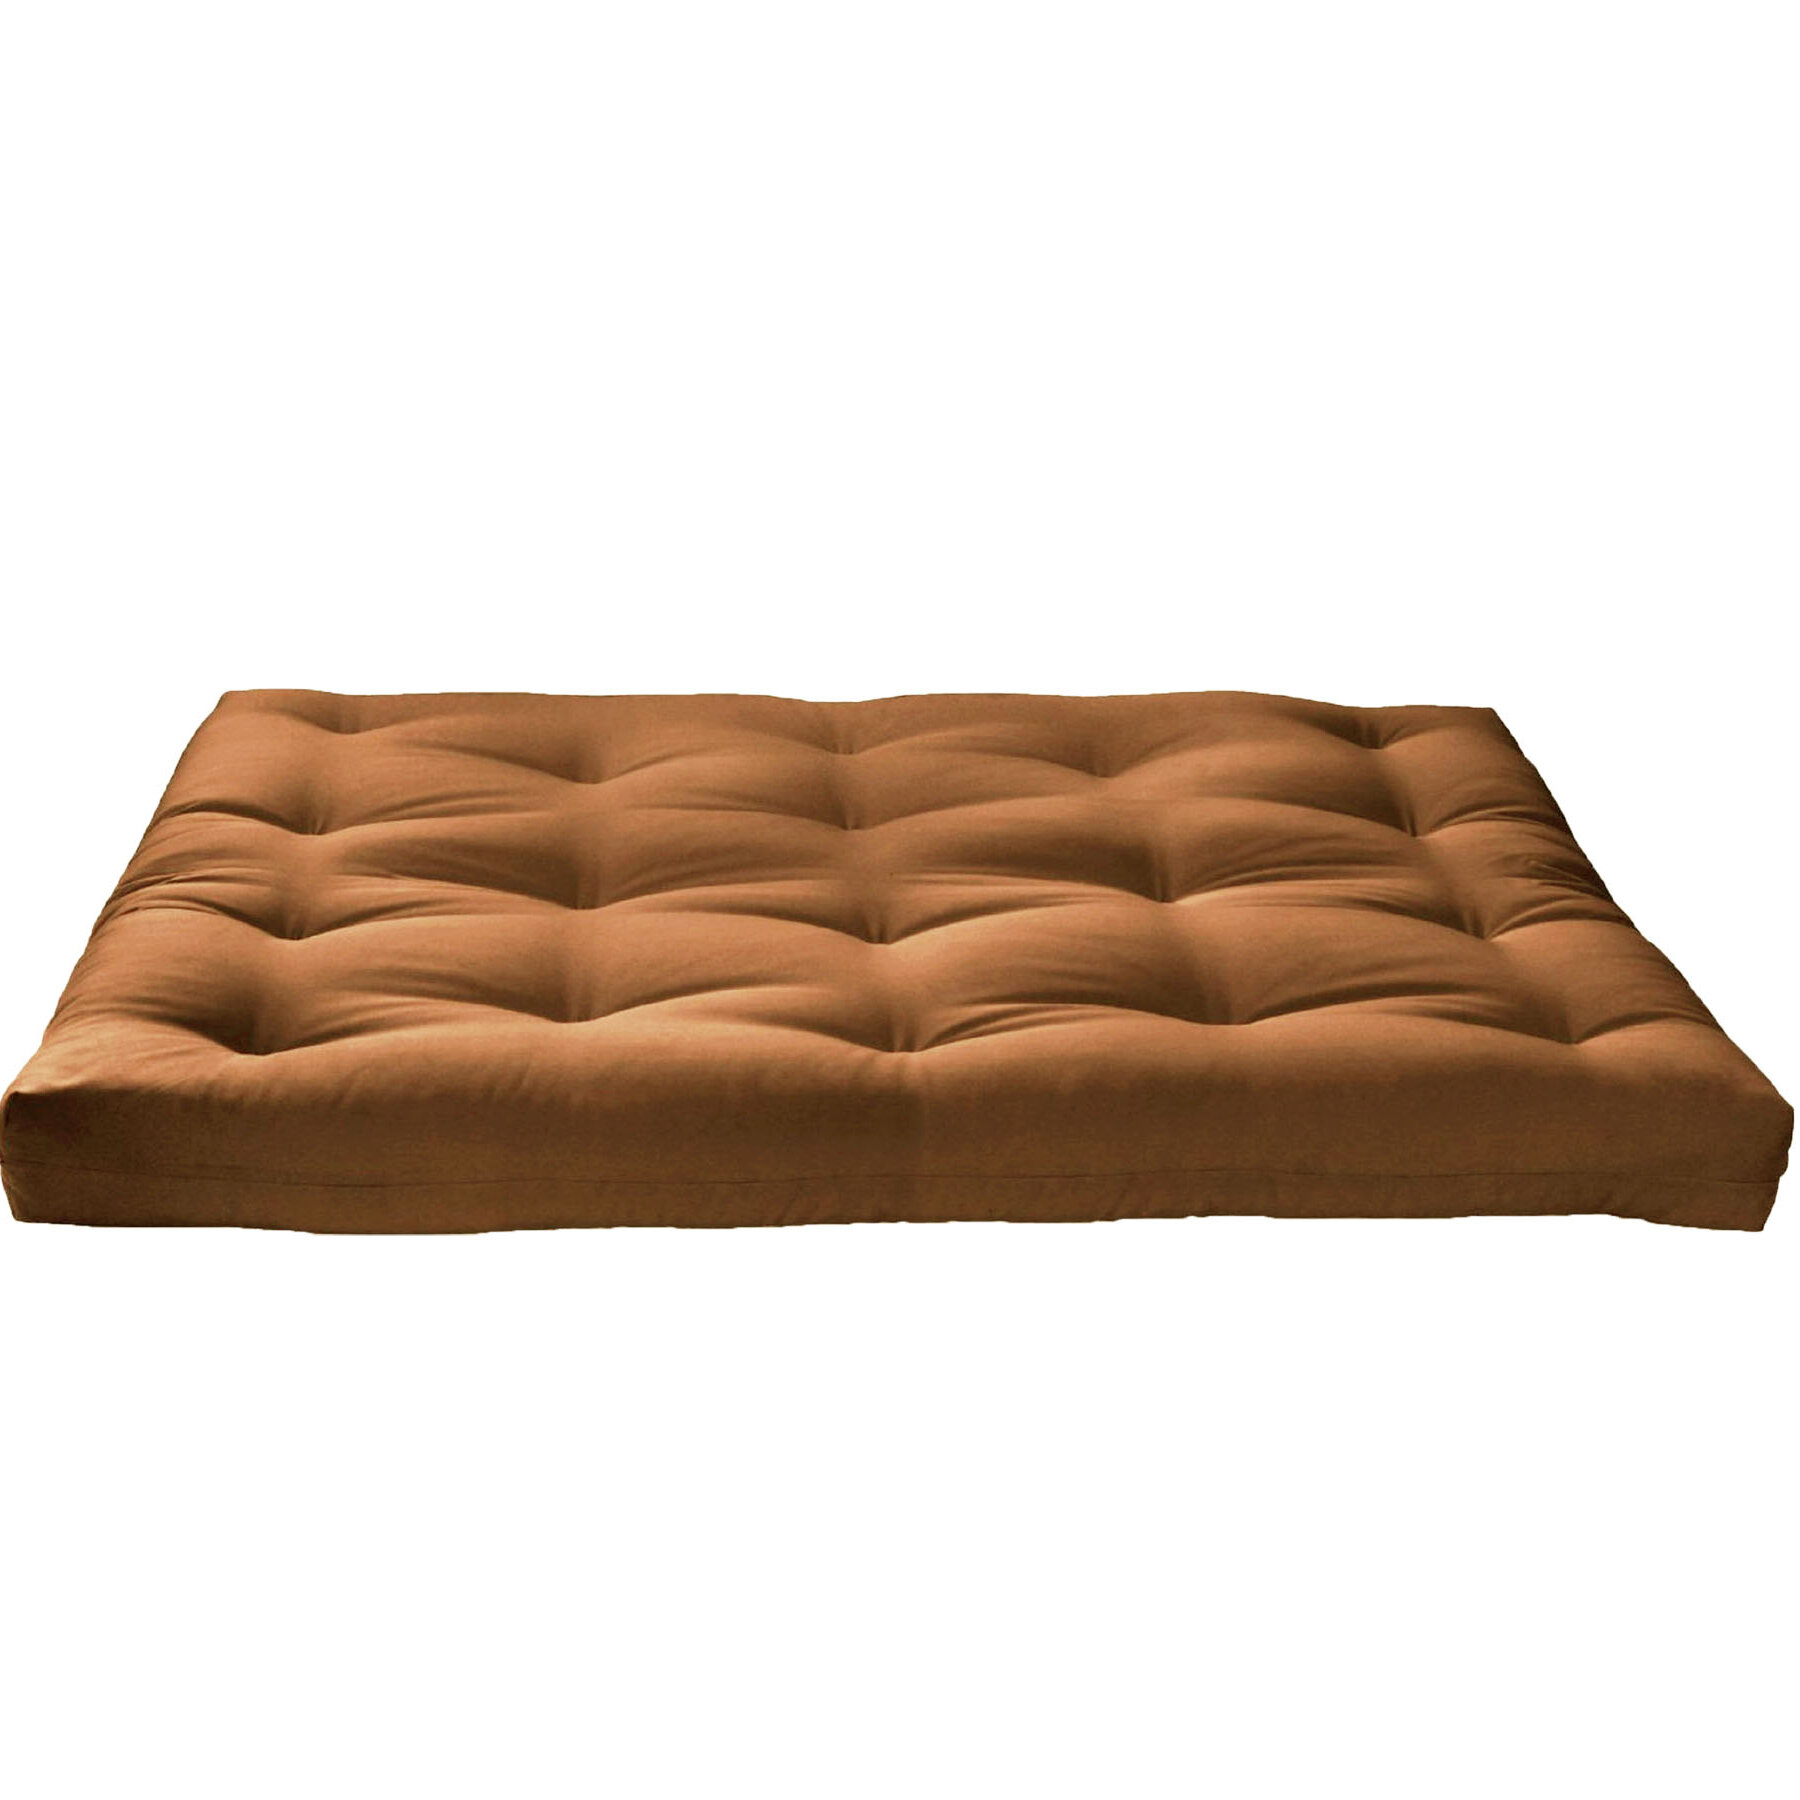 Beige Full Futon Mattresses You Ll Love